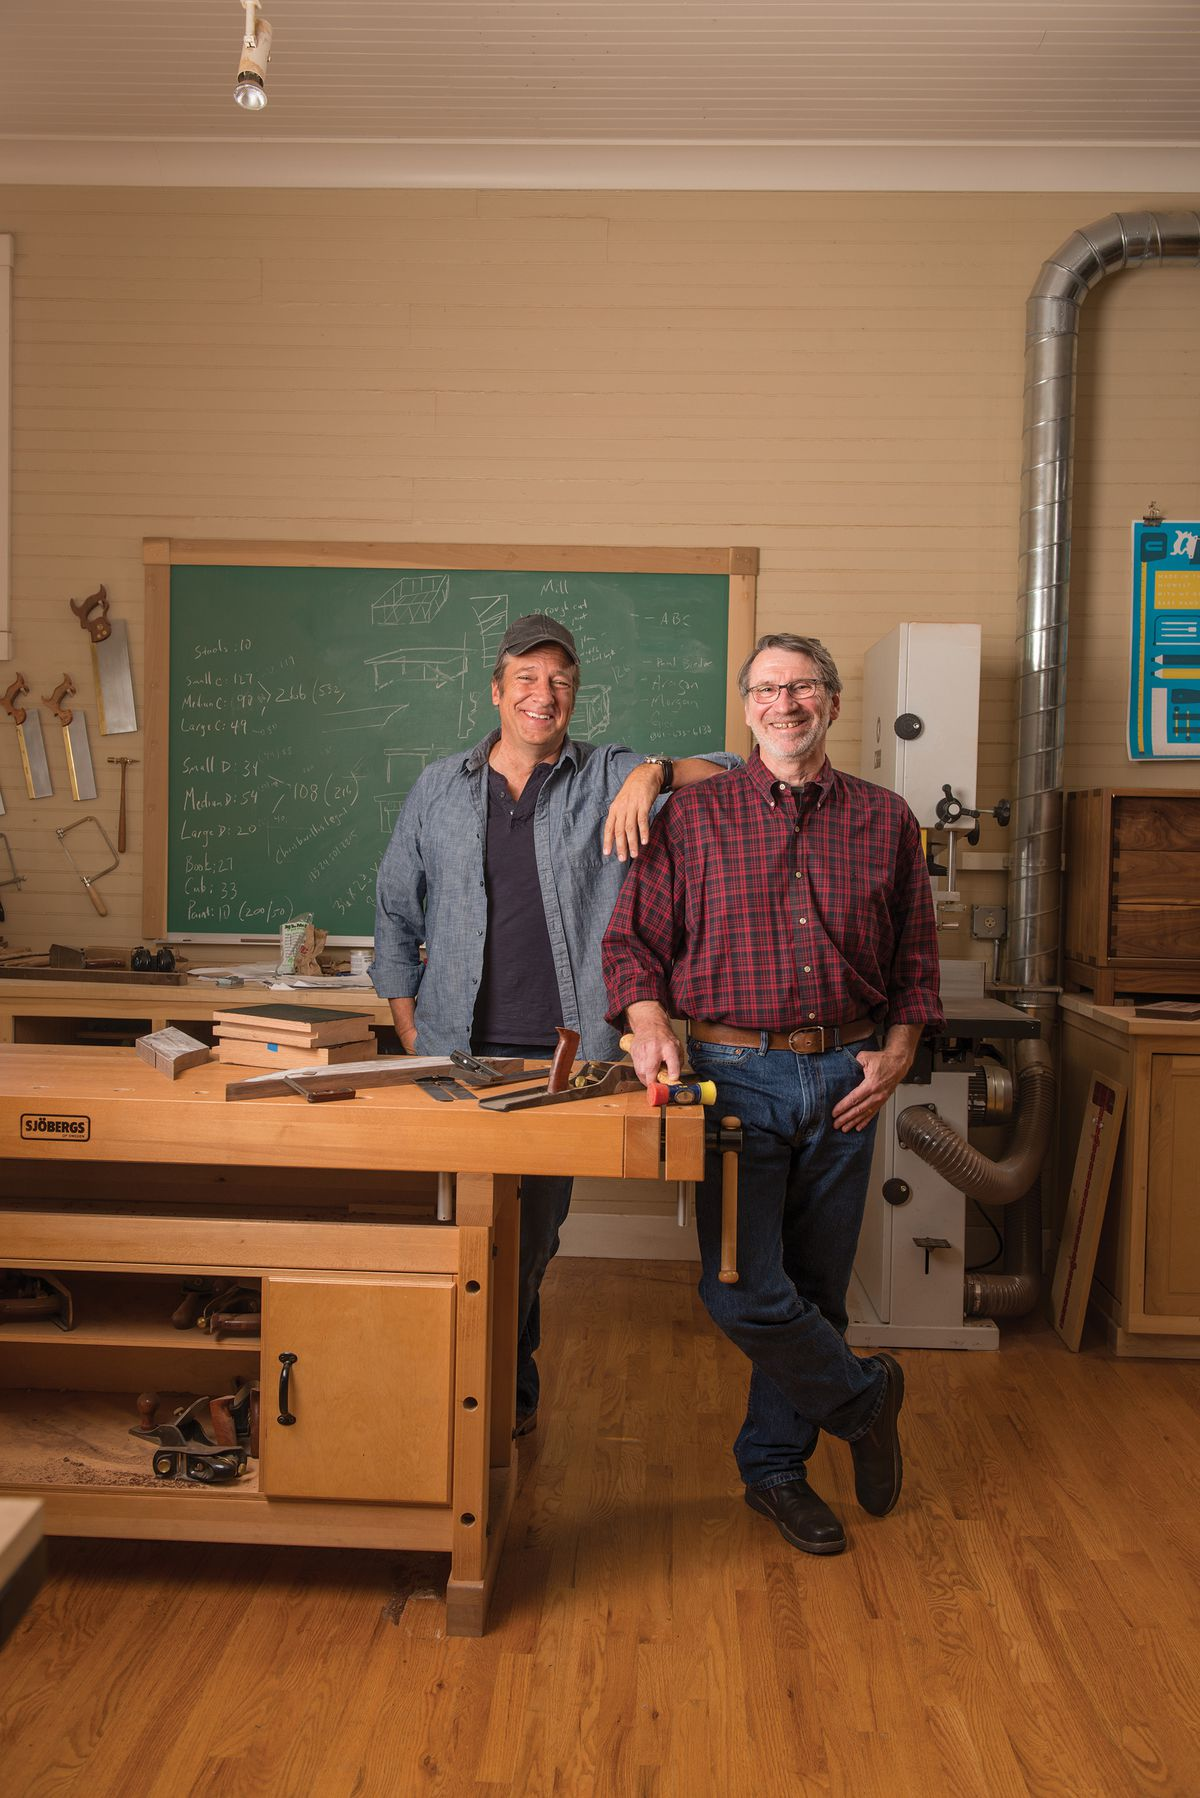 <p><em>Dirty Jobs</em> creator Mike Rowe and This Old House's Norm Abram got together to discuss raising awareness of and support for the mikeroweWORKS Foundation's Work Ethic Scholarship Program. </p>